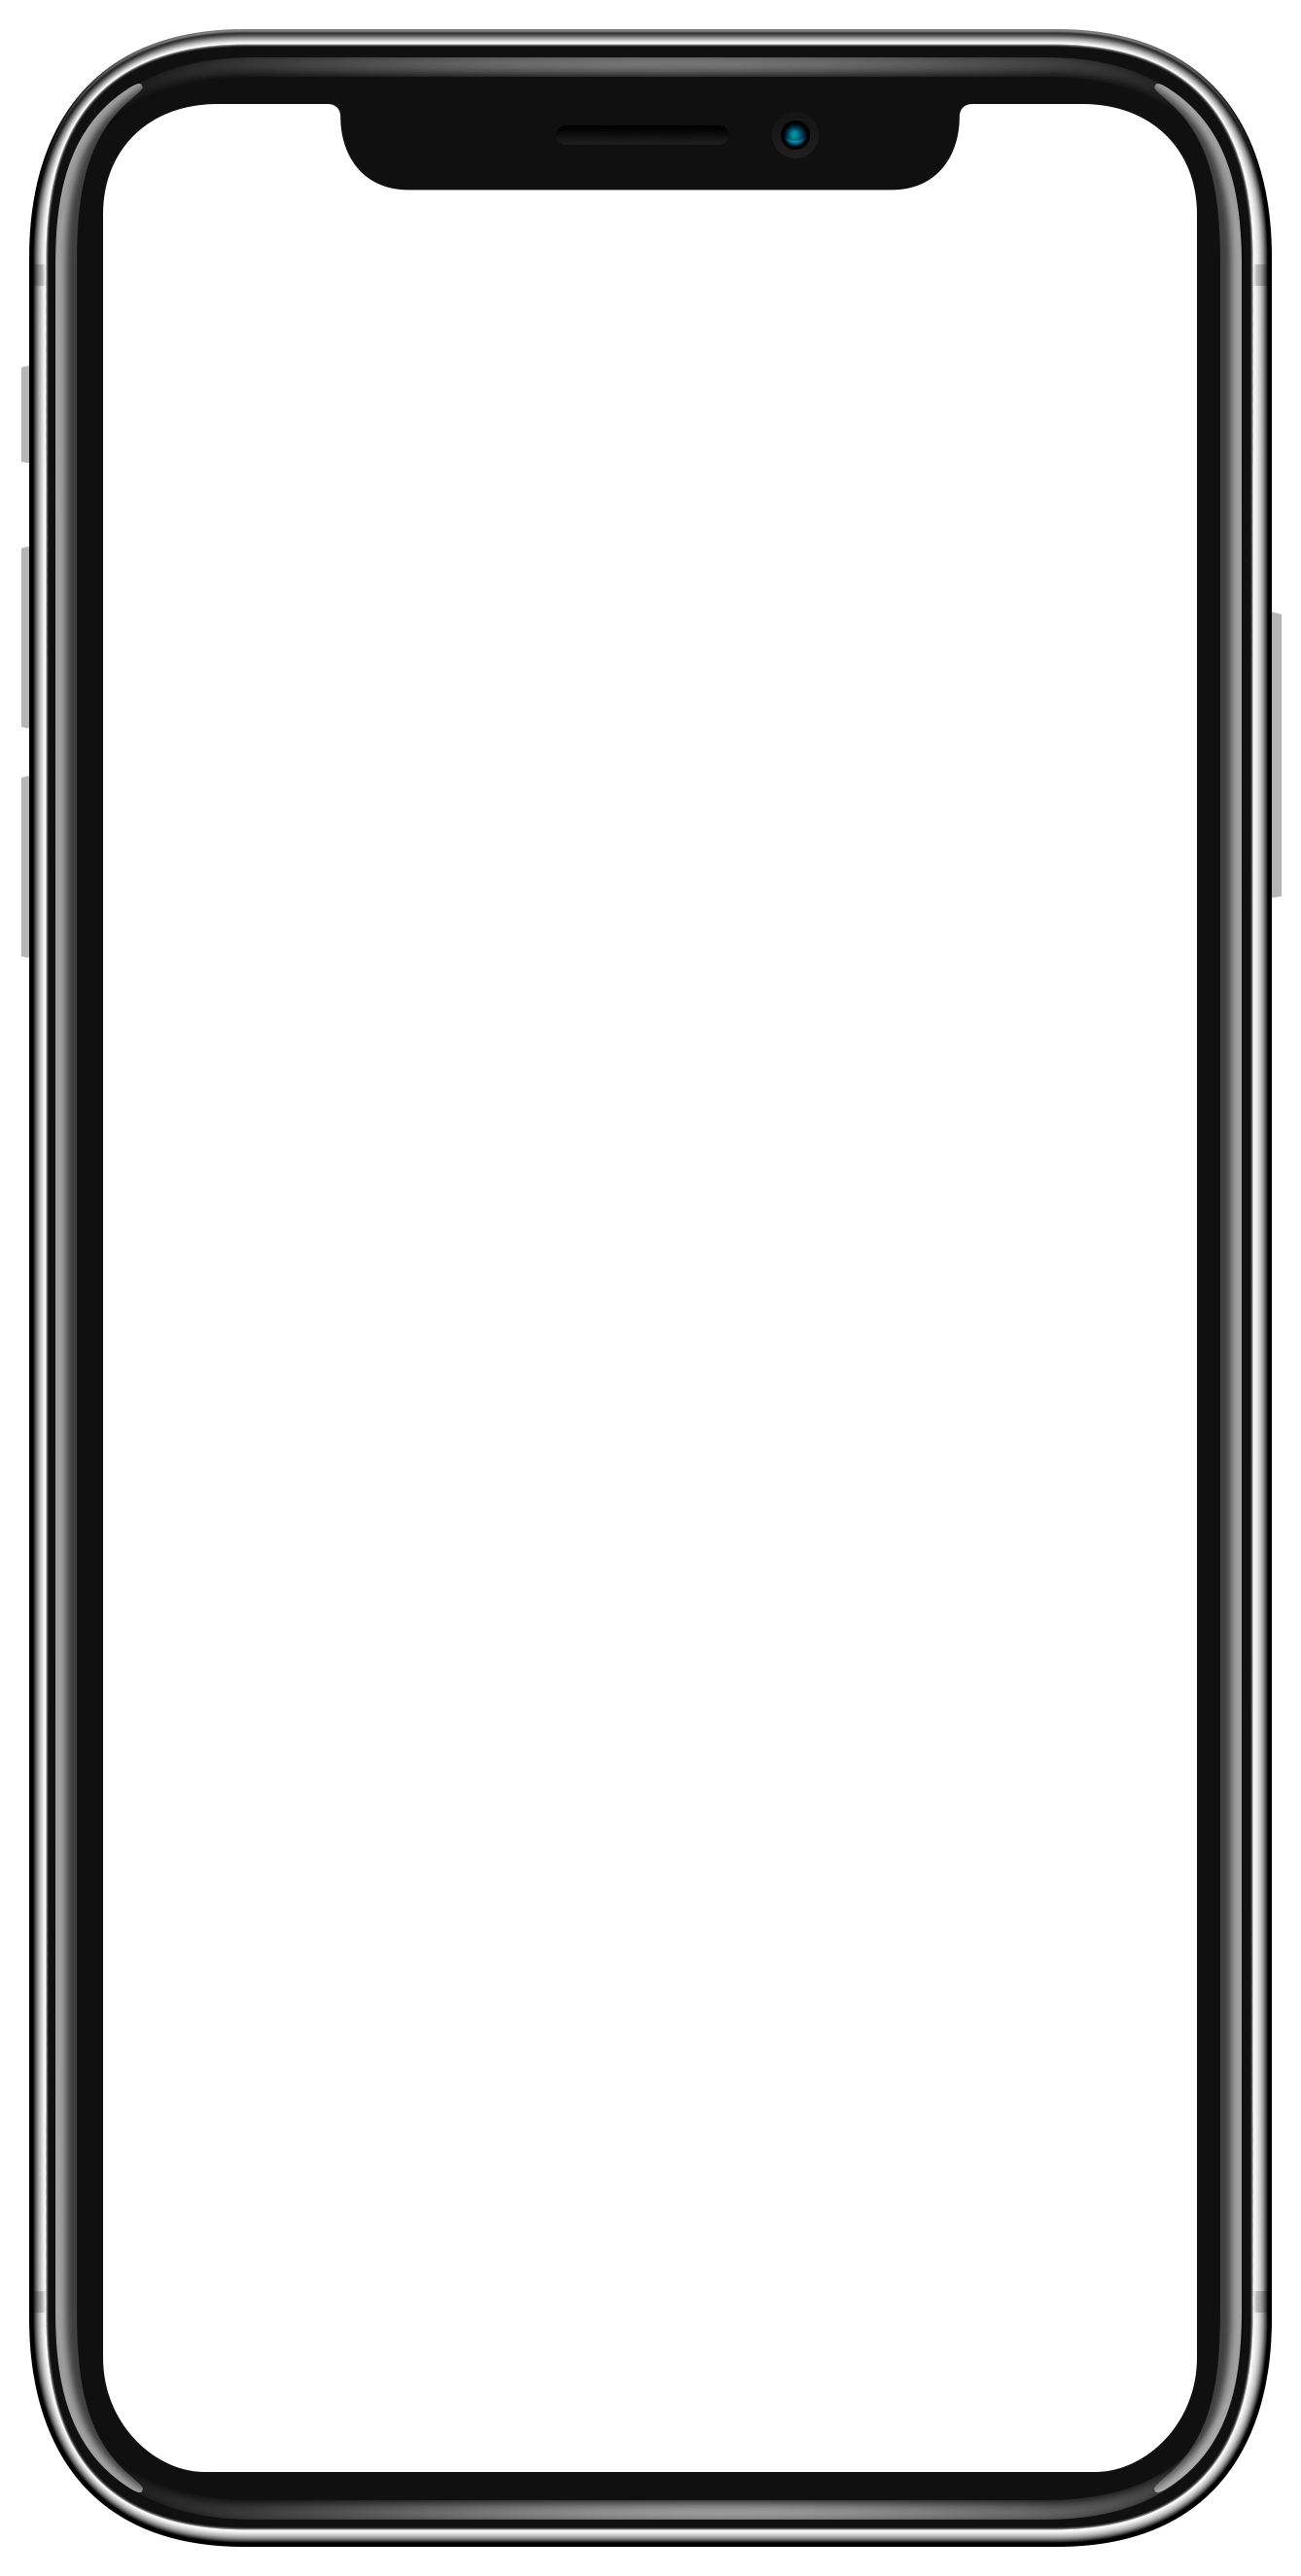 Iphone Frame Png, png collections at sccpre.cat.